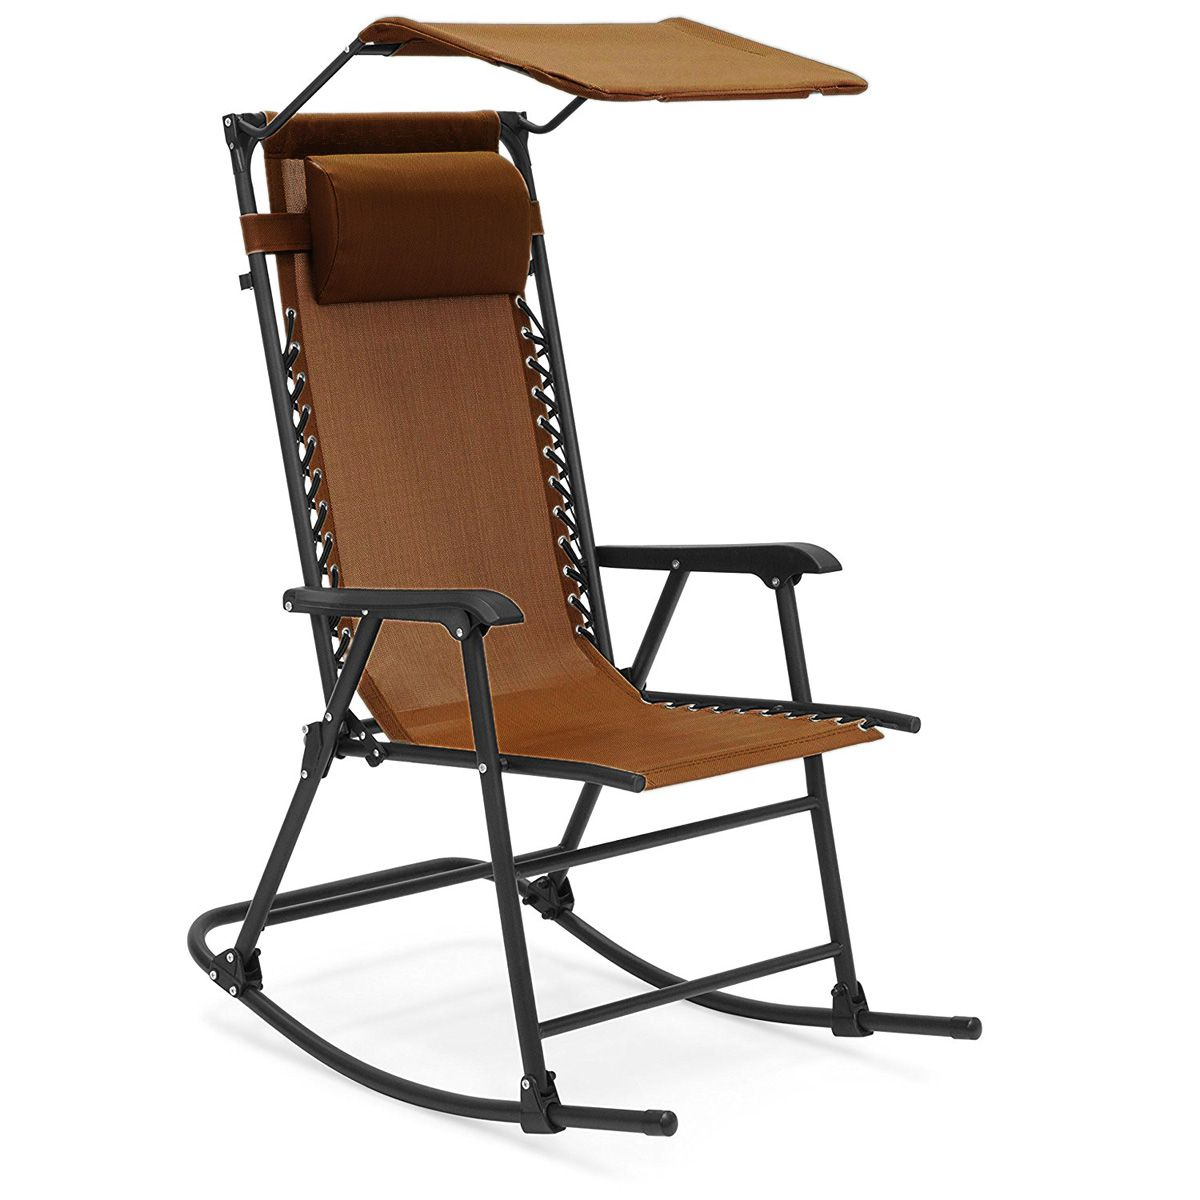 2828d914cb4 Folding Relax Recliner Rocking Chair for Indoor   Outdoor Purpose ...